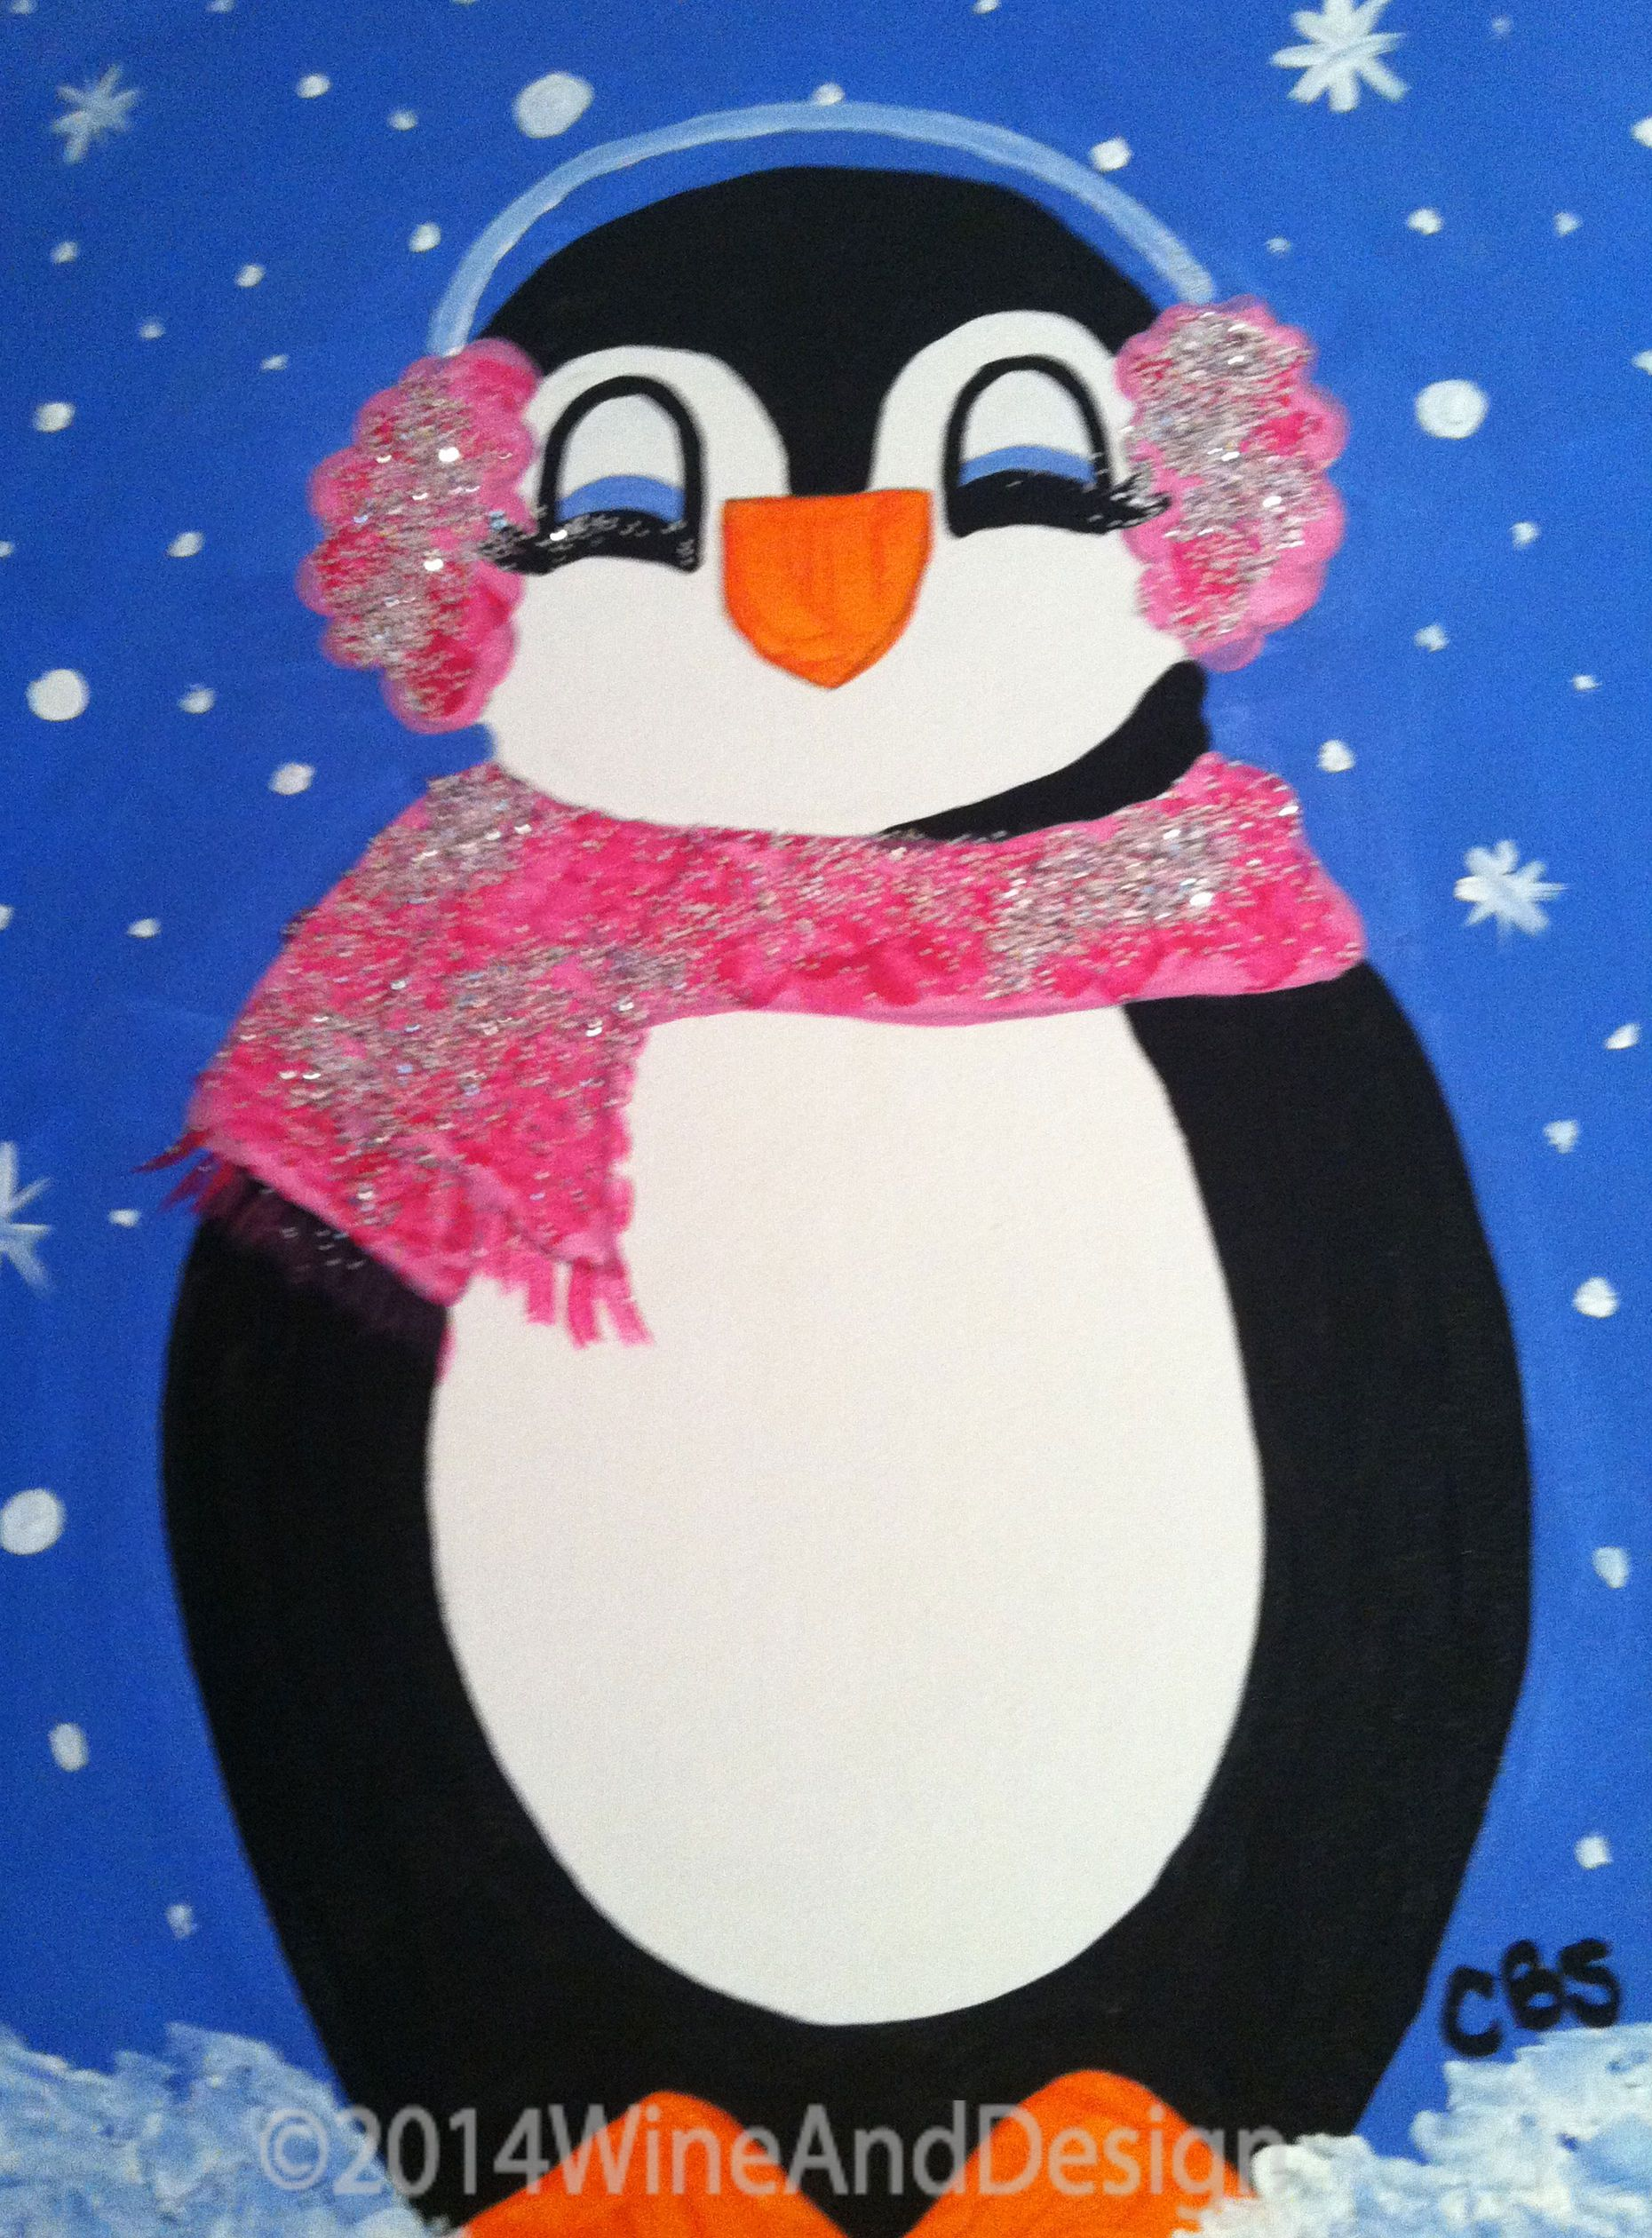 Christmas Paintings For Kids On Canvas.Penguin Canvas Painting Google Search Painting Ideas